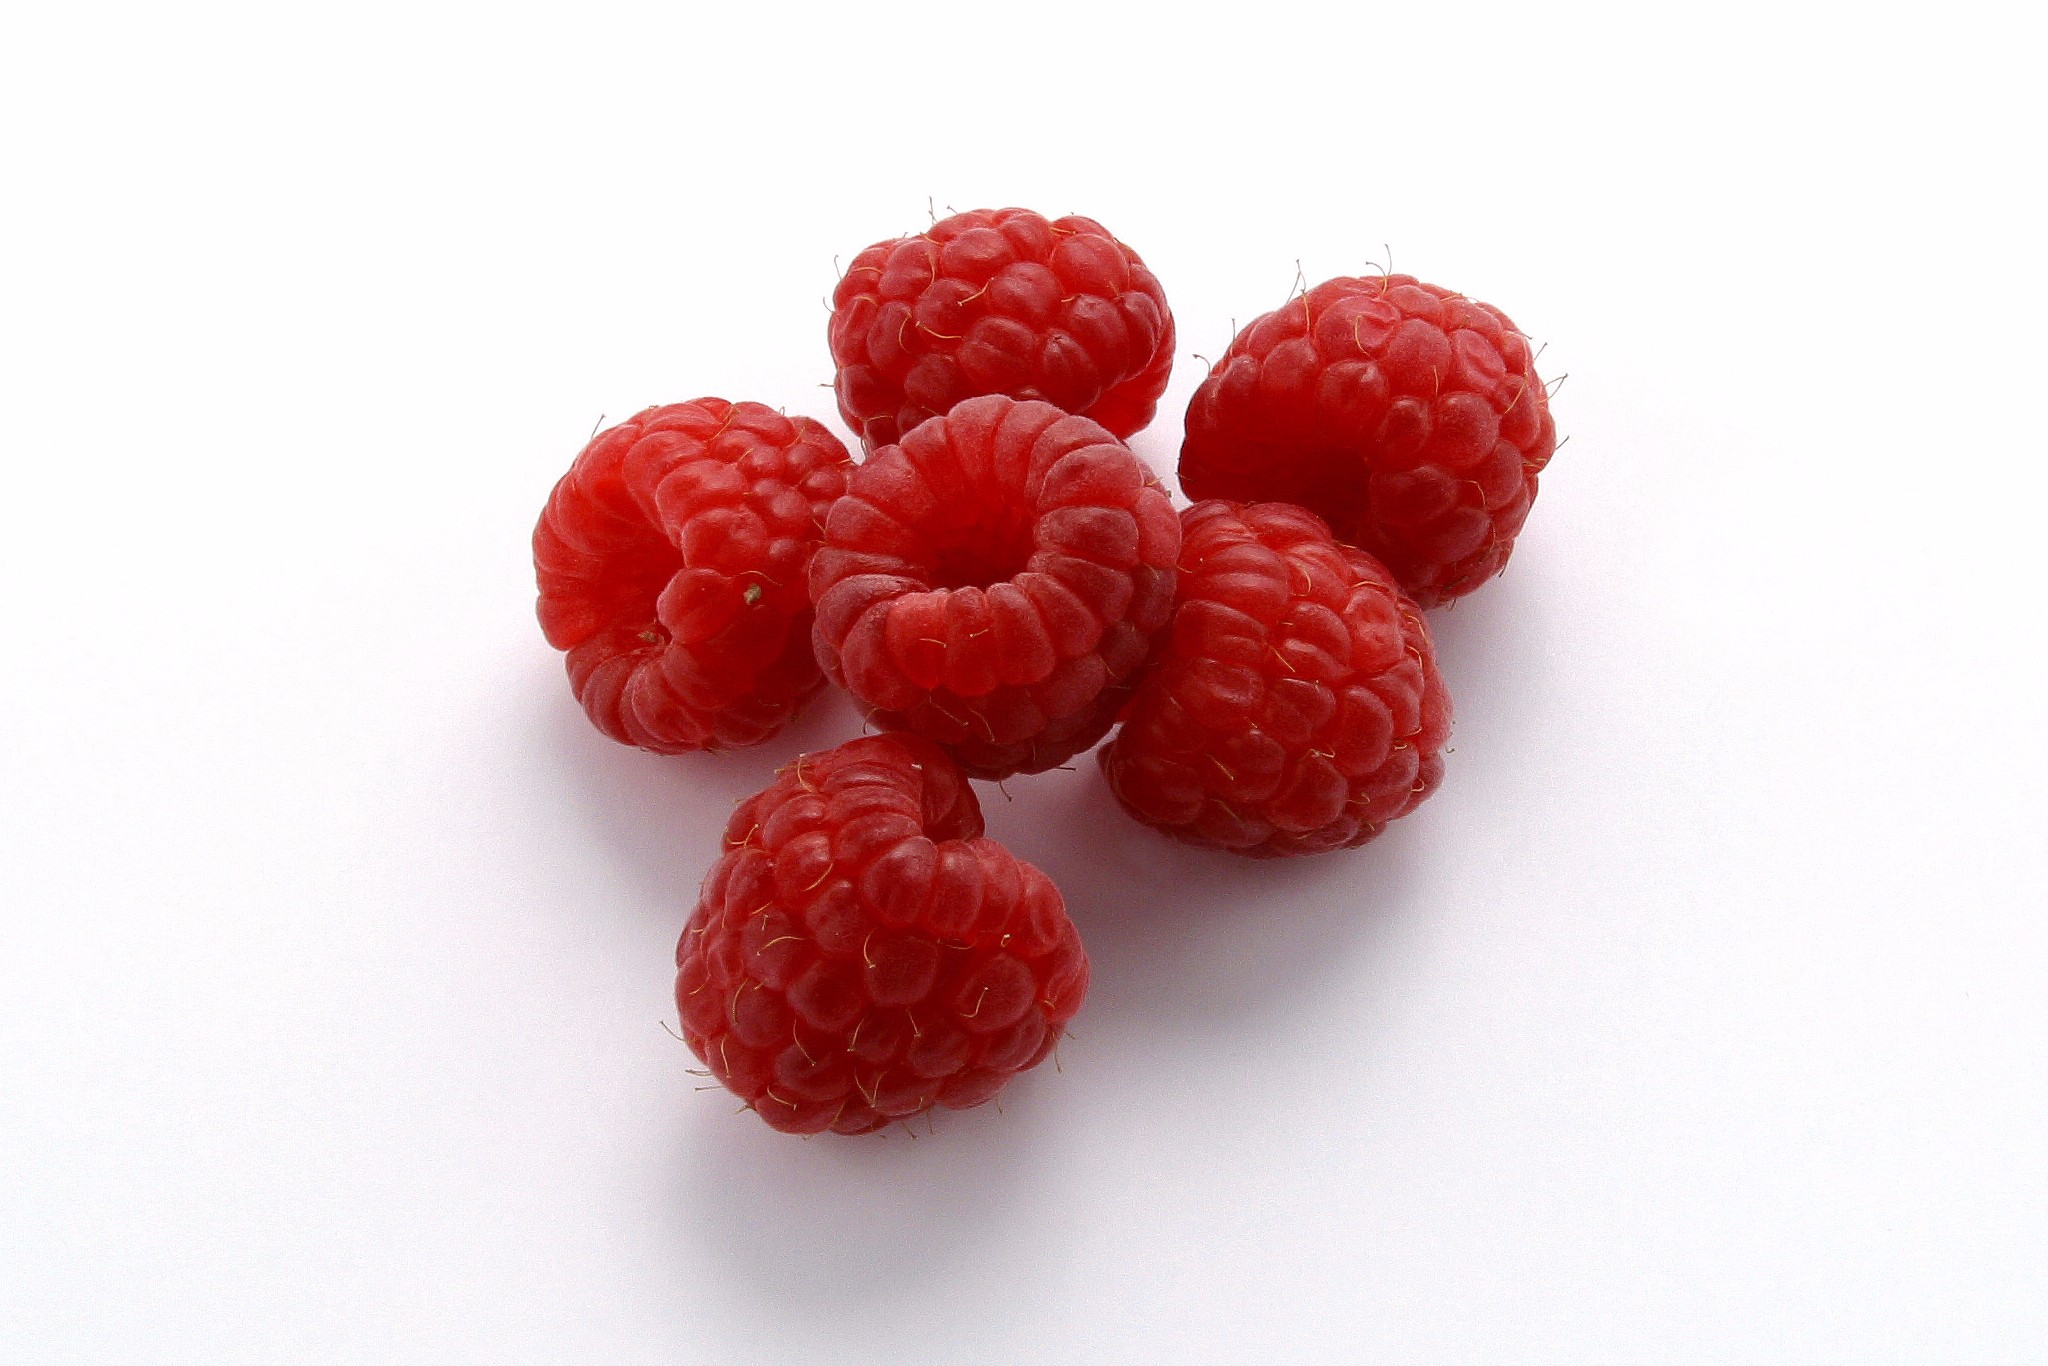 Driscoll's says its clamshell pack is great for transporting raspberries – or other soft, fragile produce items – and its air-flow keeps them cool and fresh until reaching supermarkets and consumers.